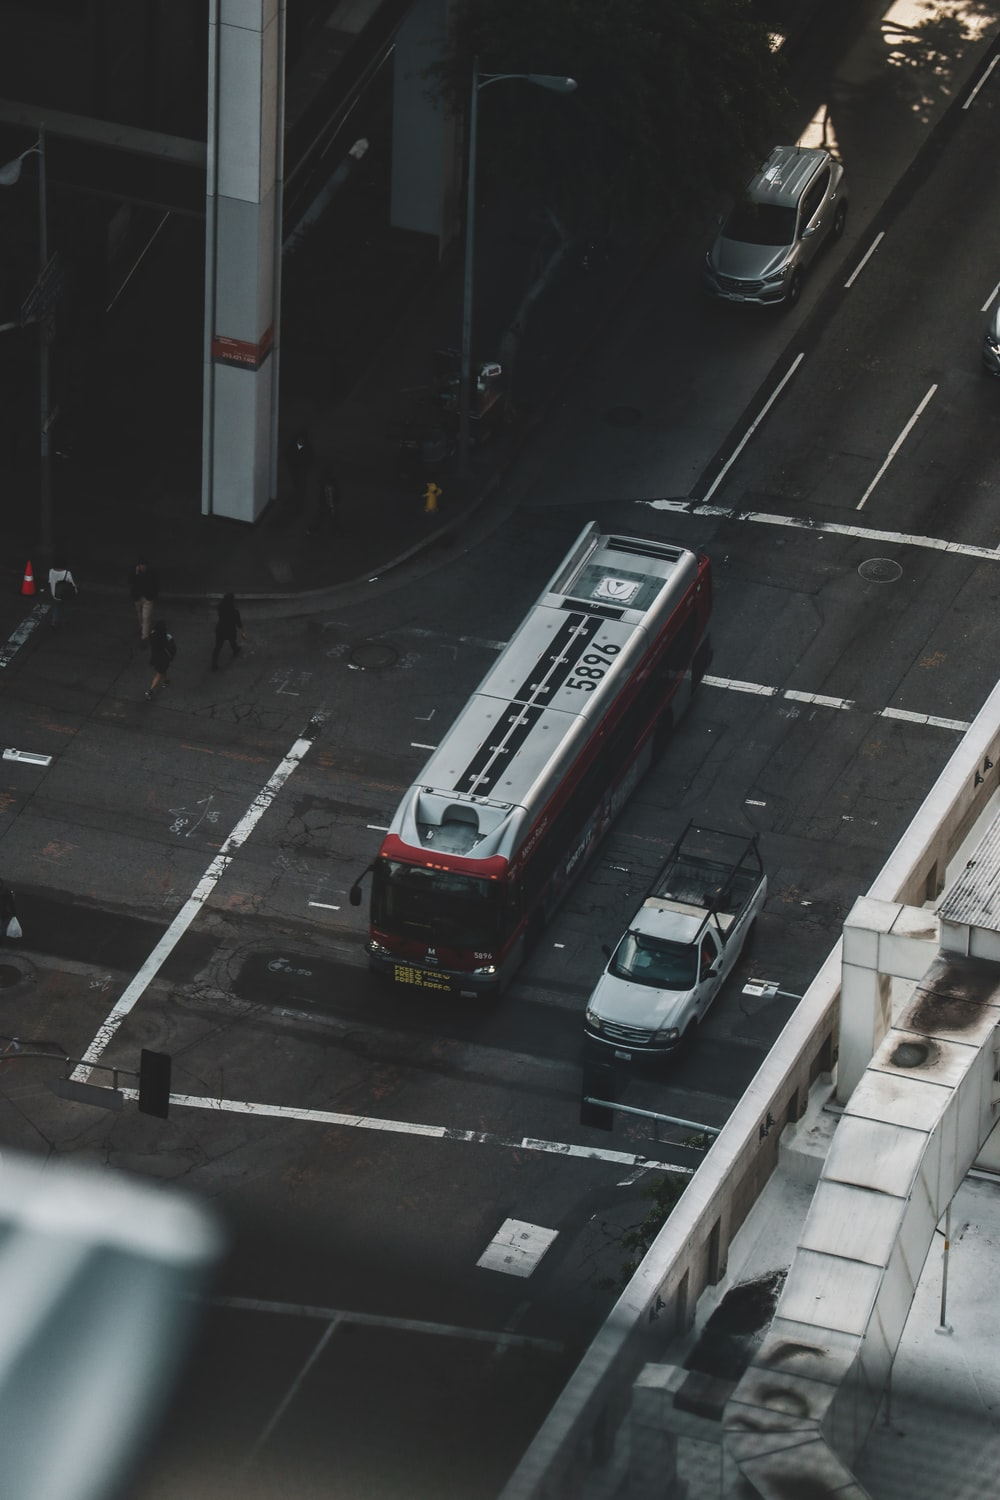 red bus on road during daytime